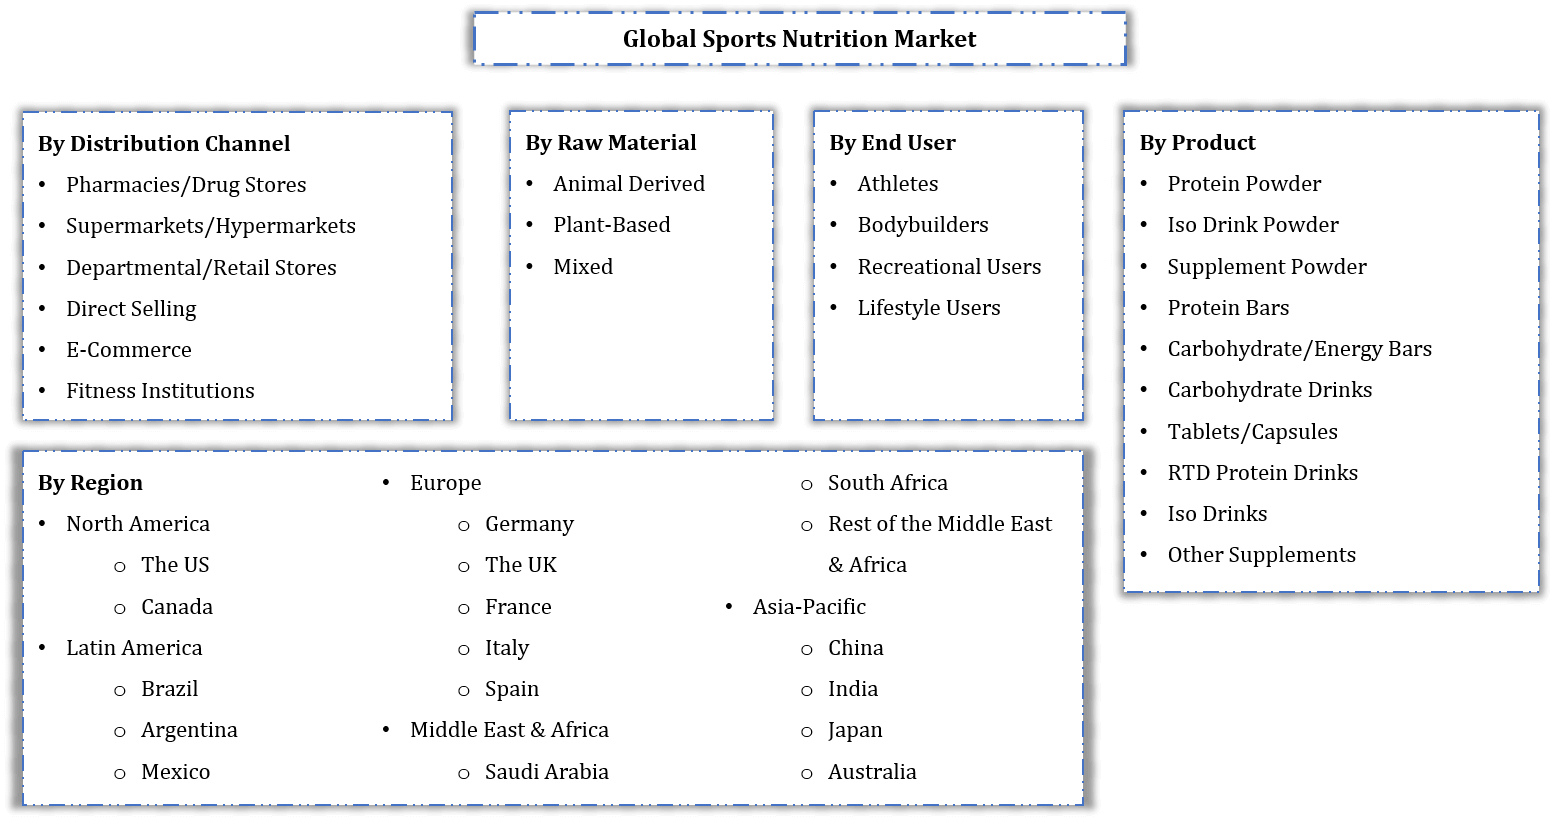 Global Sports Nutrition Market Segmentation